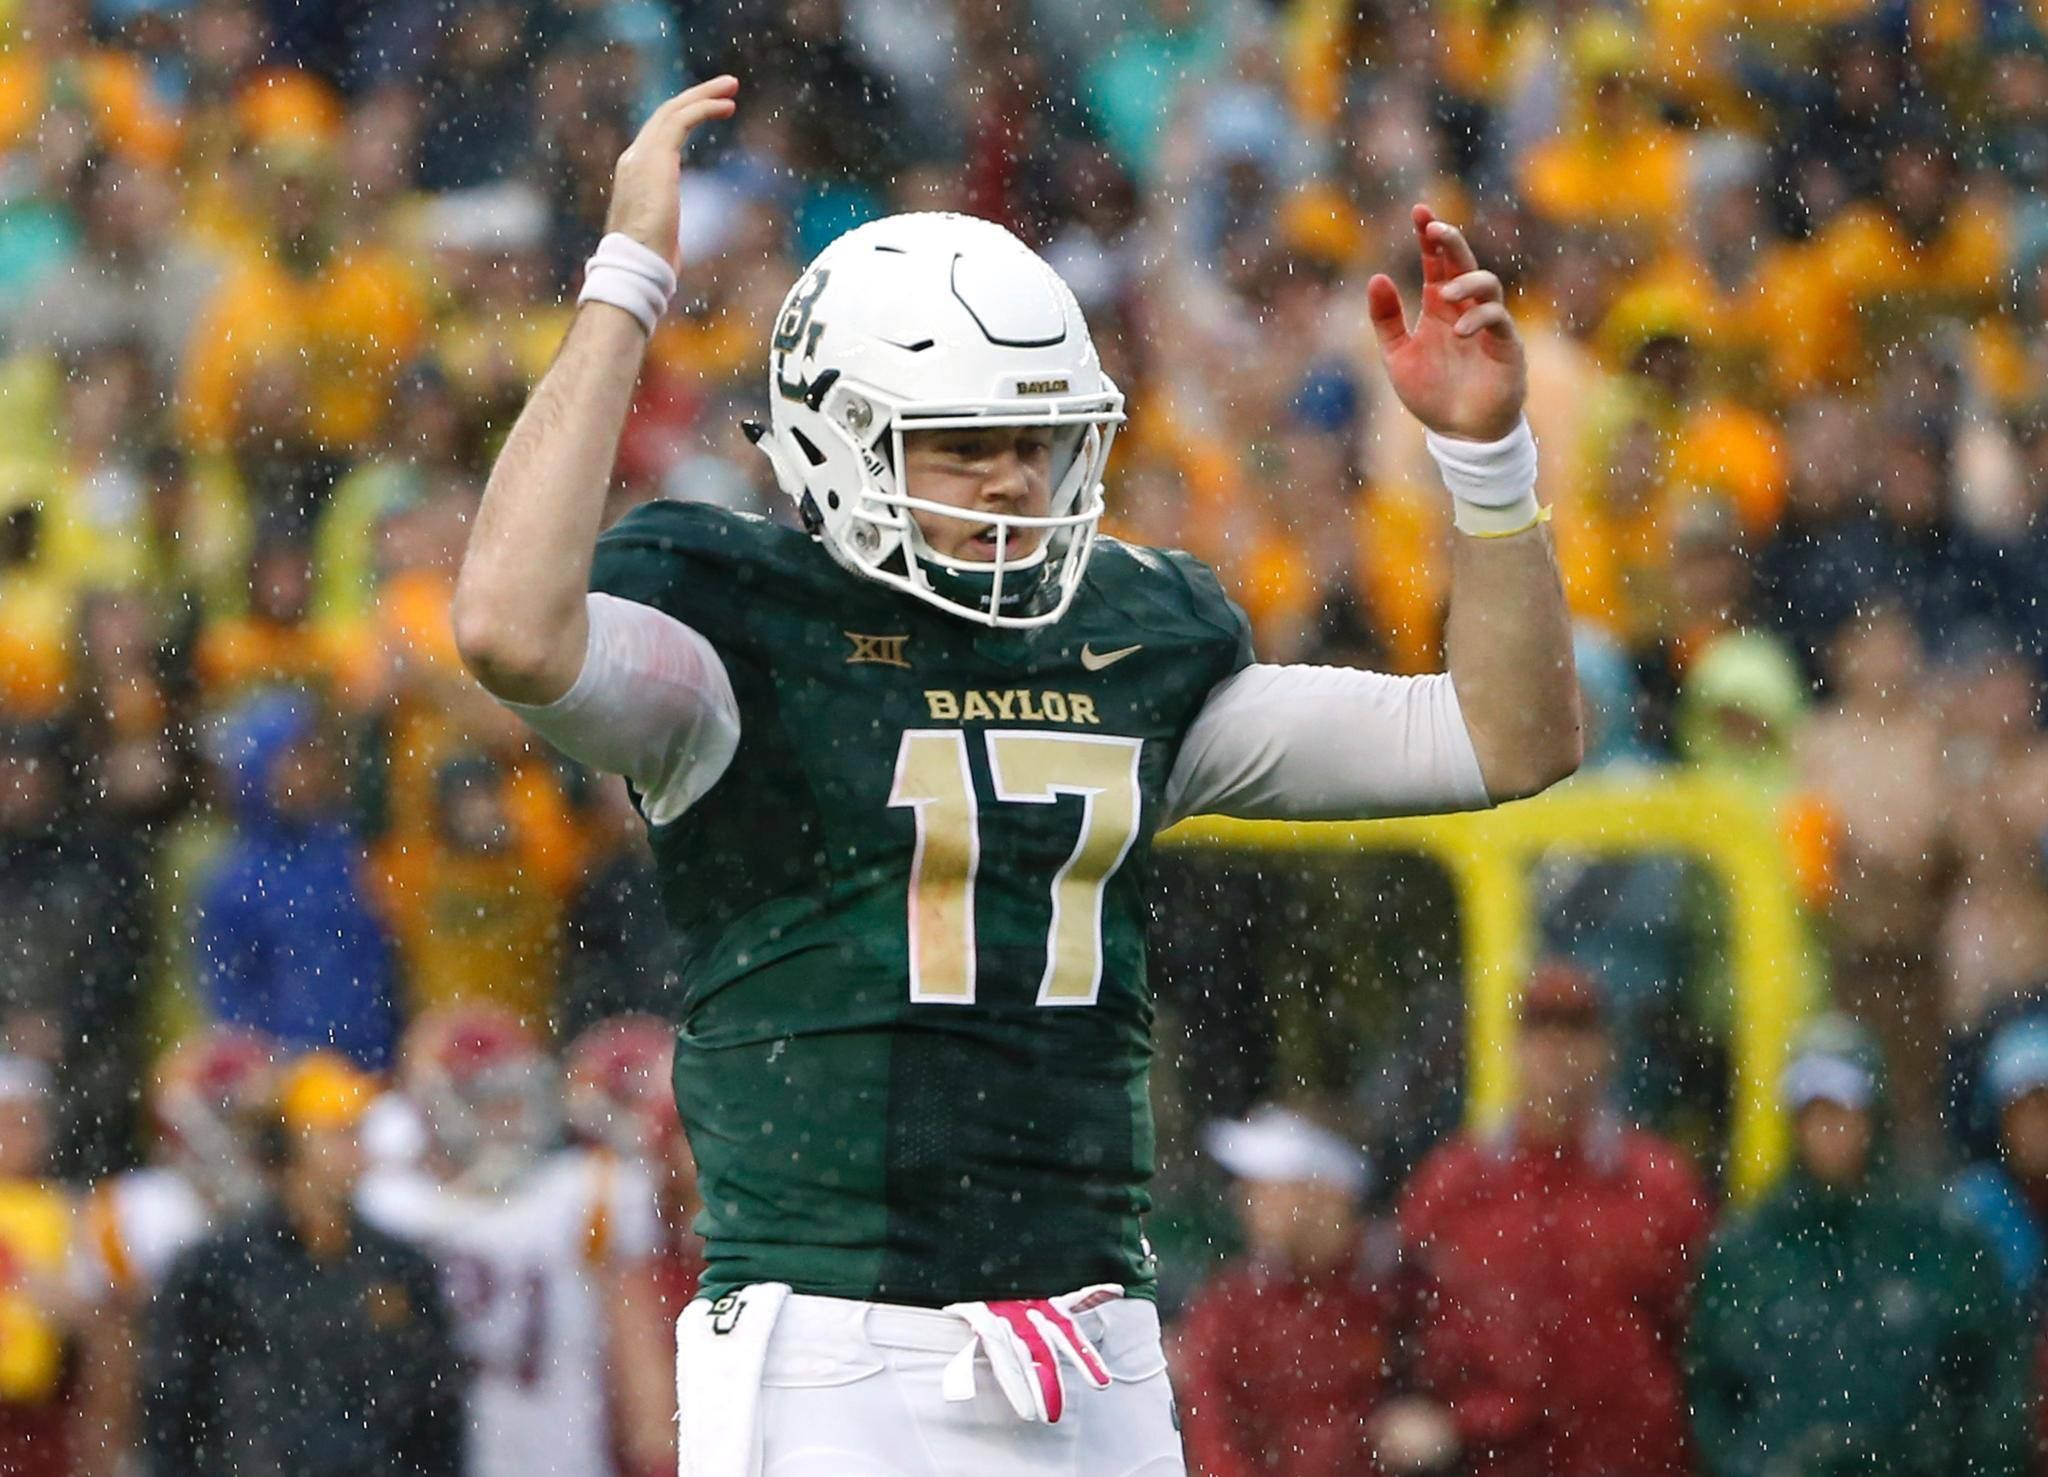 Pin by Hunter Price on College Football College football